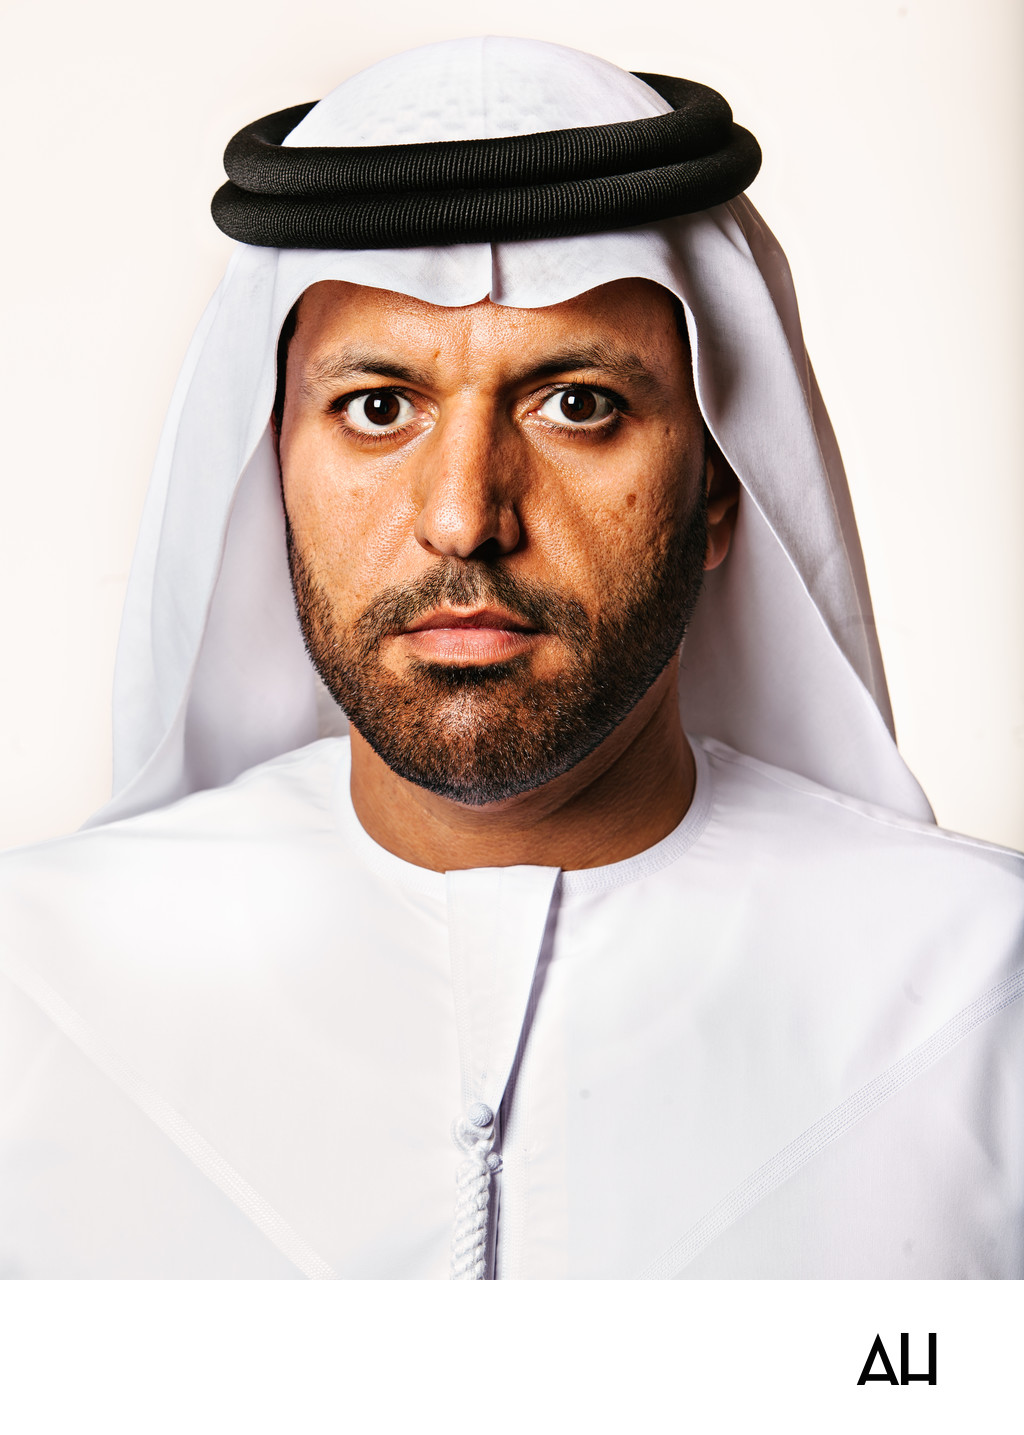 Portraits UAE